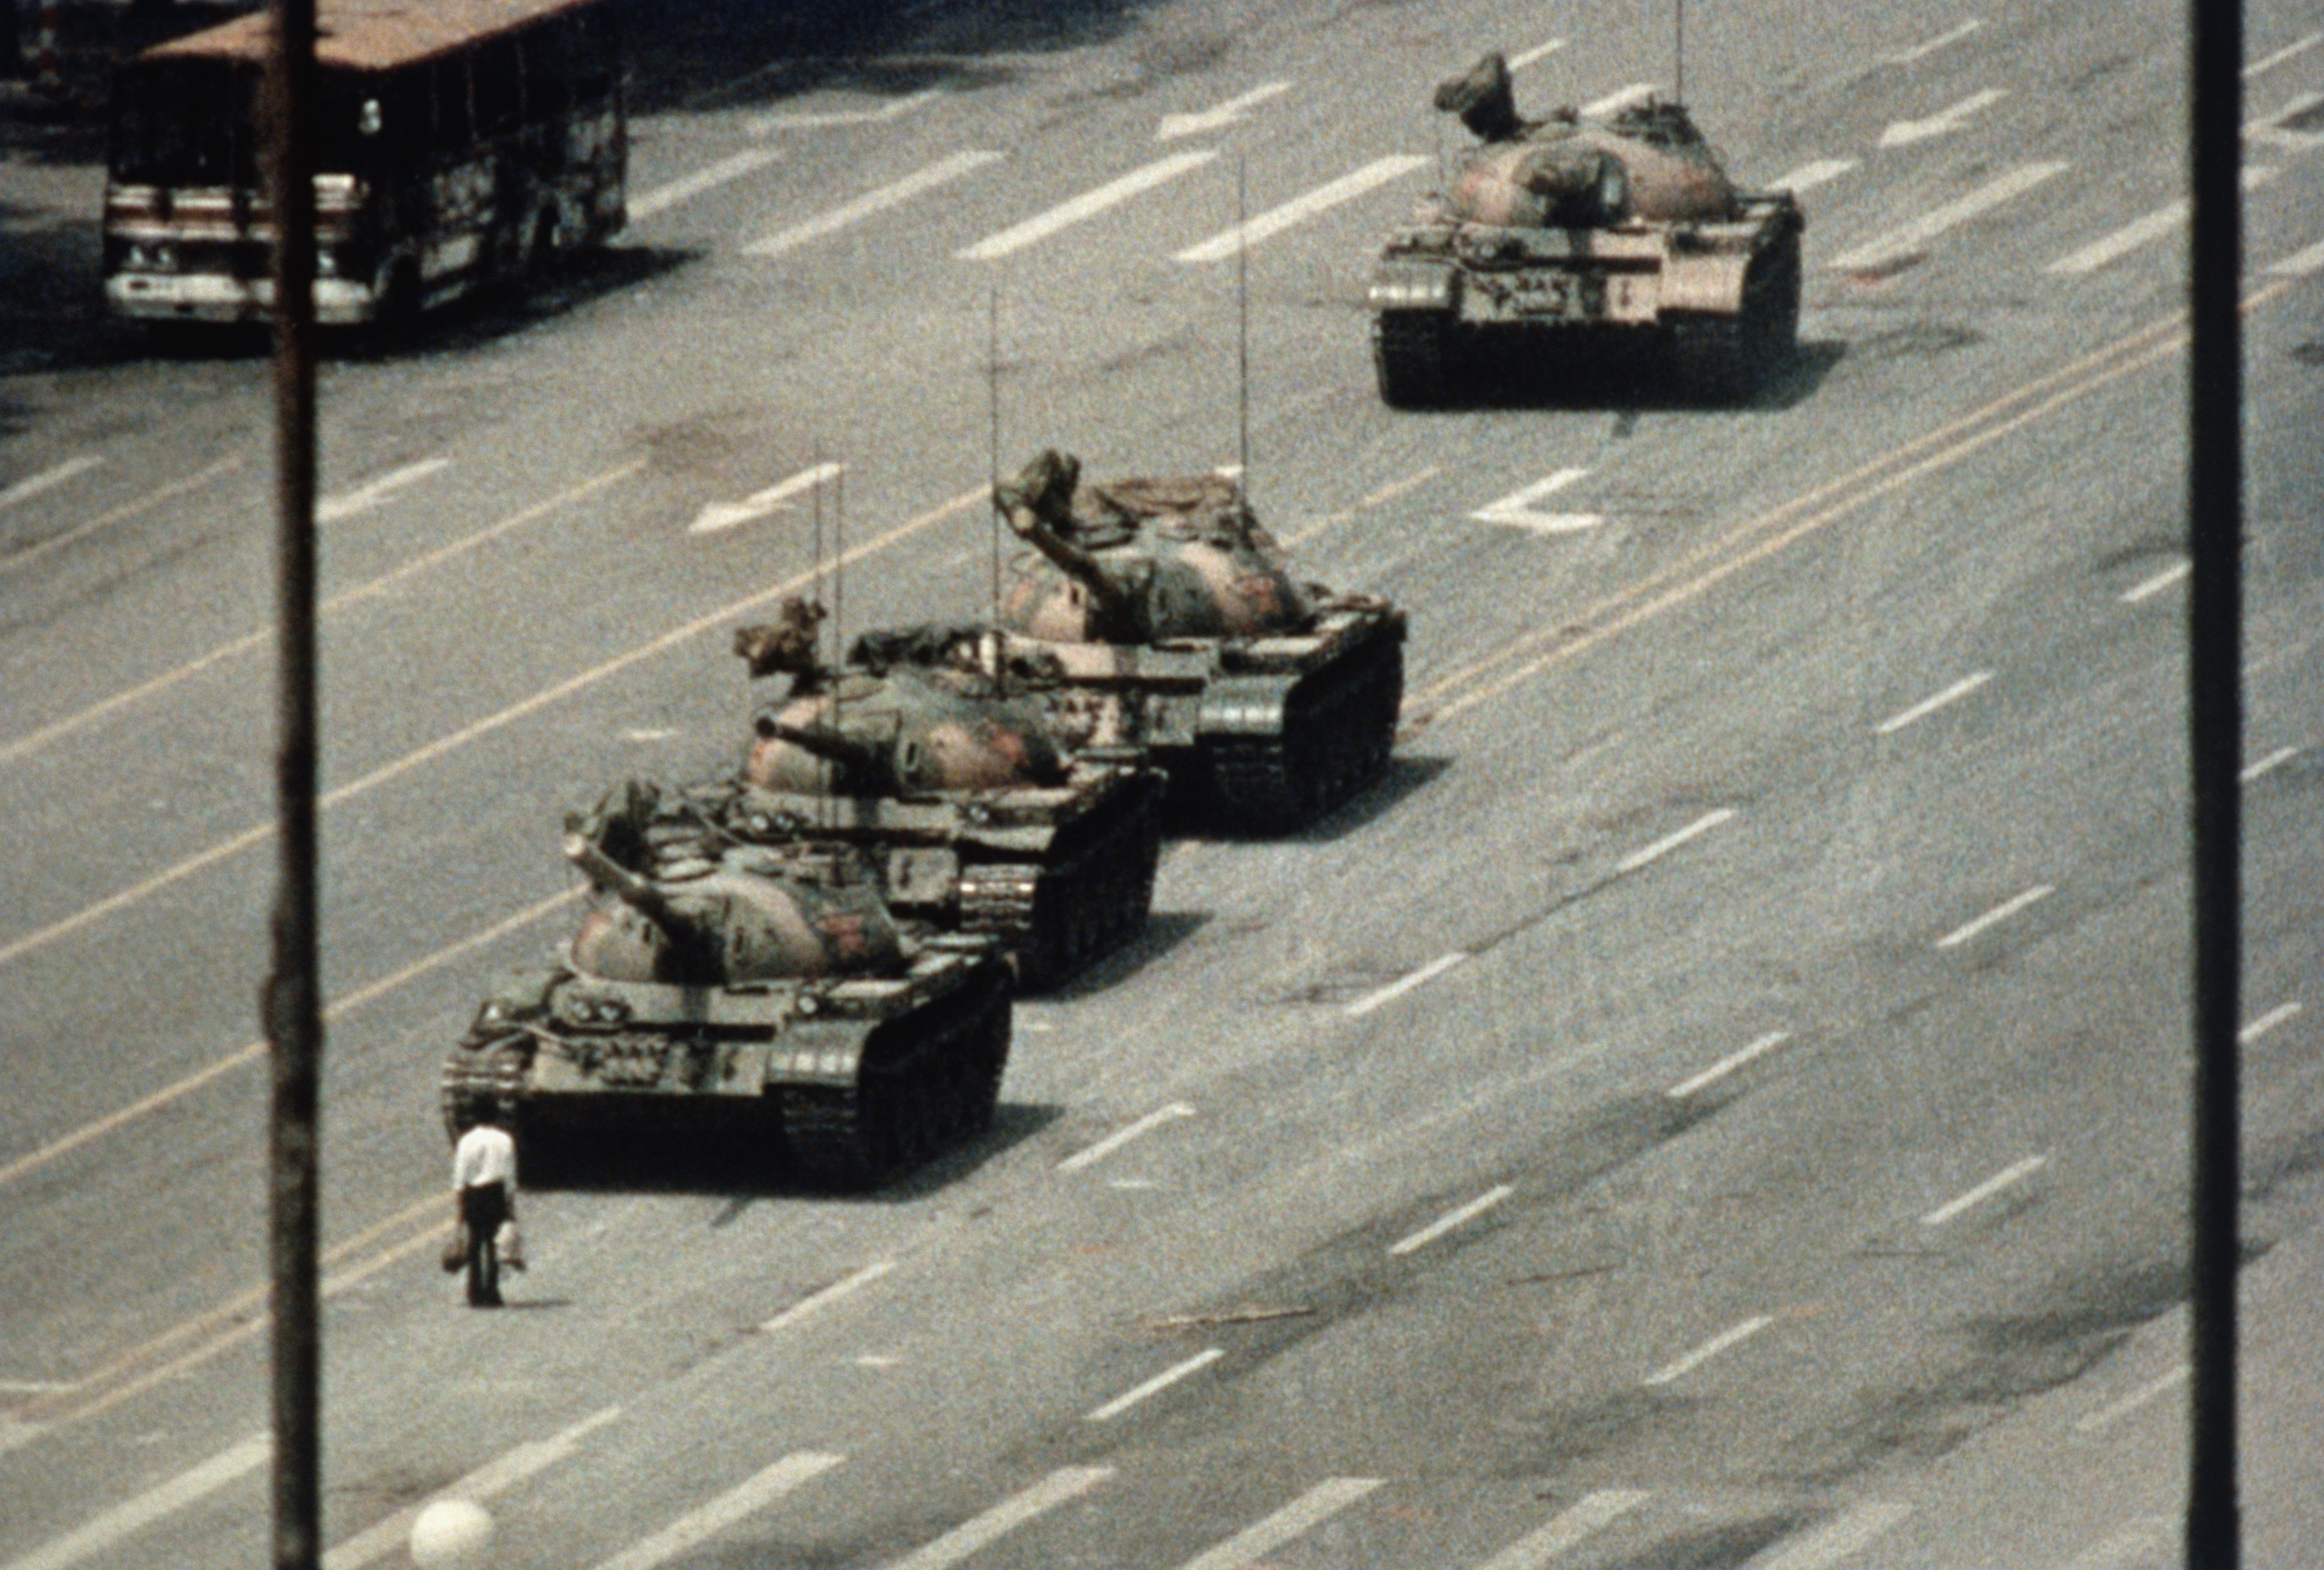 A Beijing demonstrator blocks the path of a tank convoy along the Avenue of Eternal Peace near Tiananmen Square. For weeks, people have been protesting for freedom of speech and of press from the Chinese government.